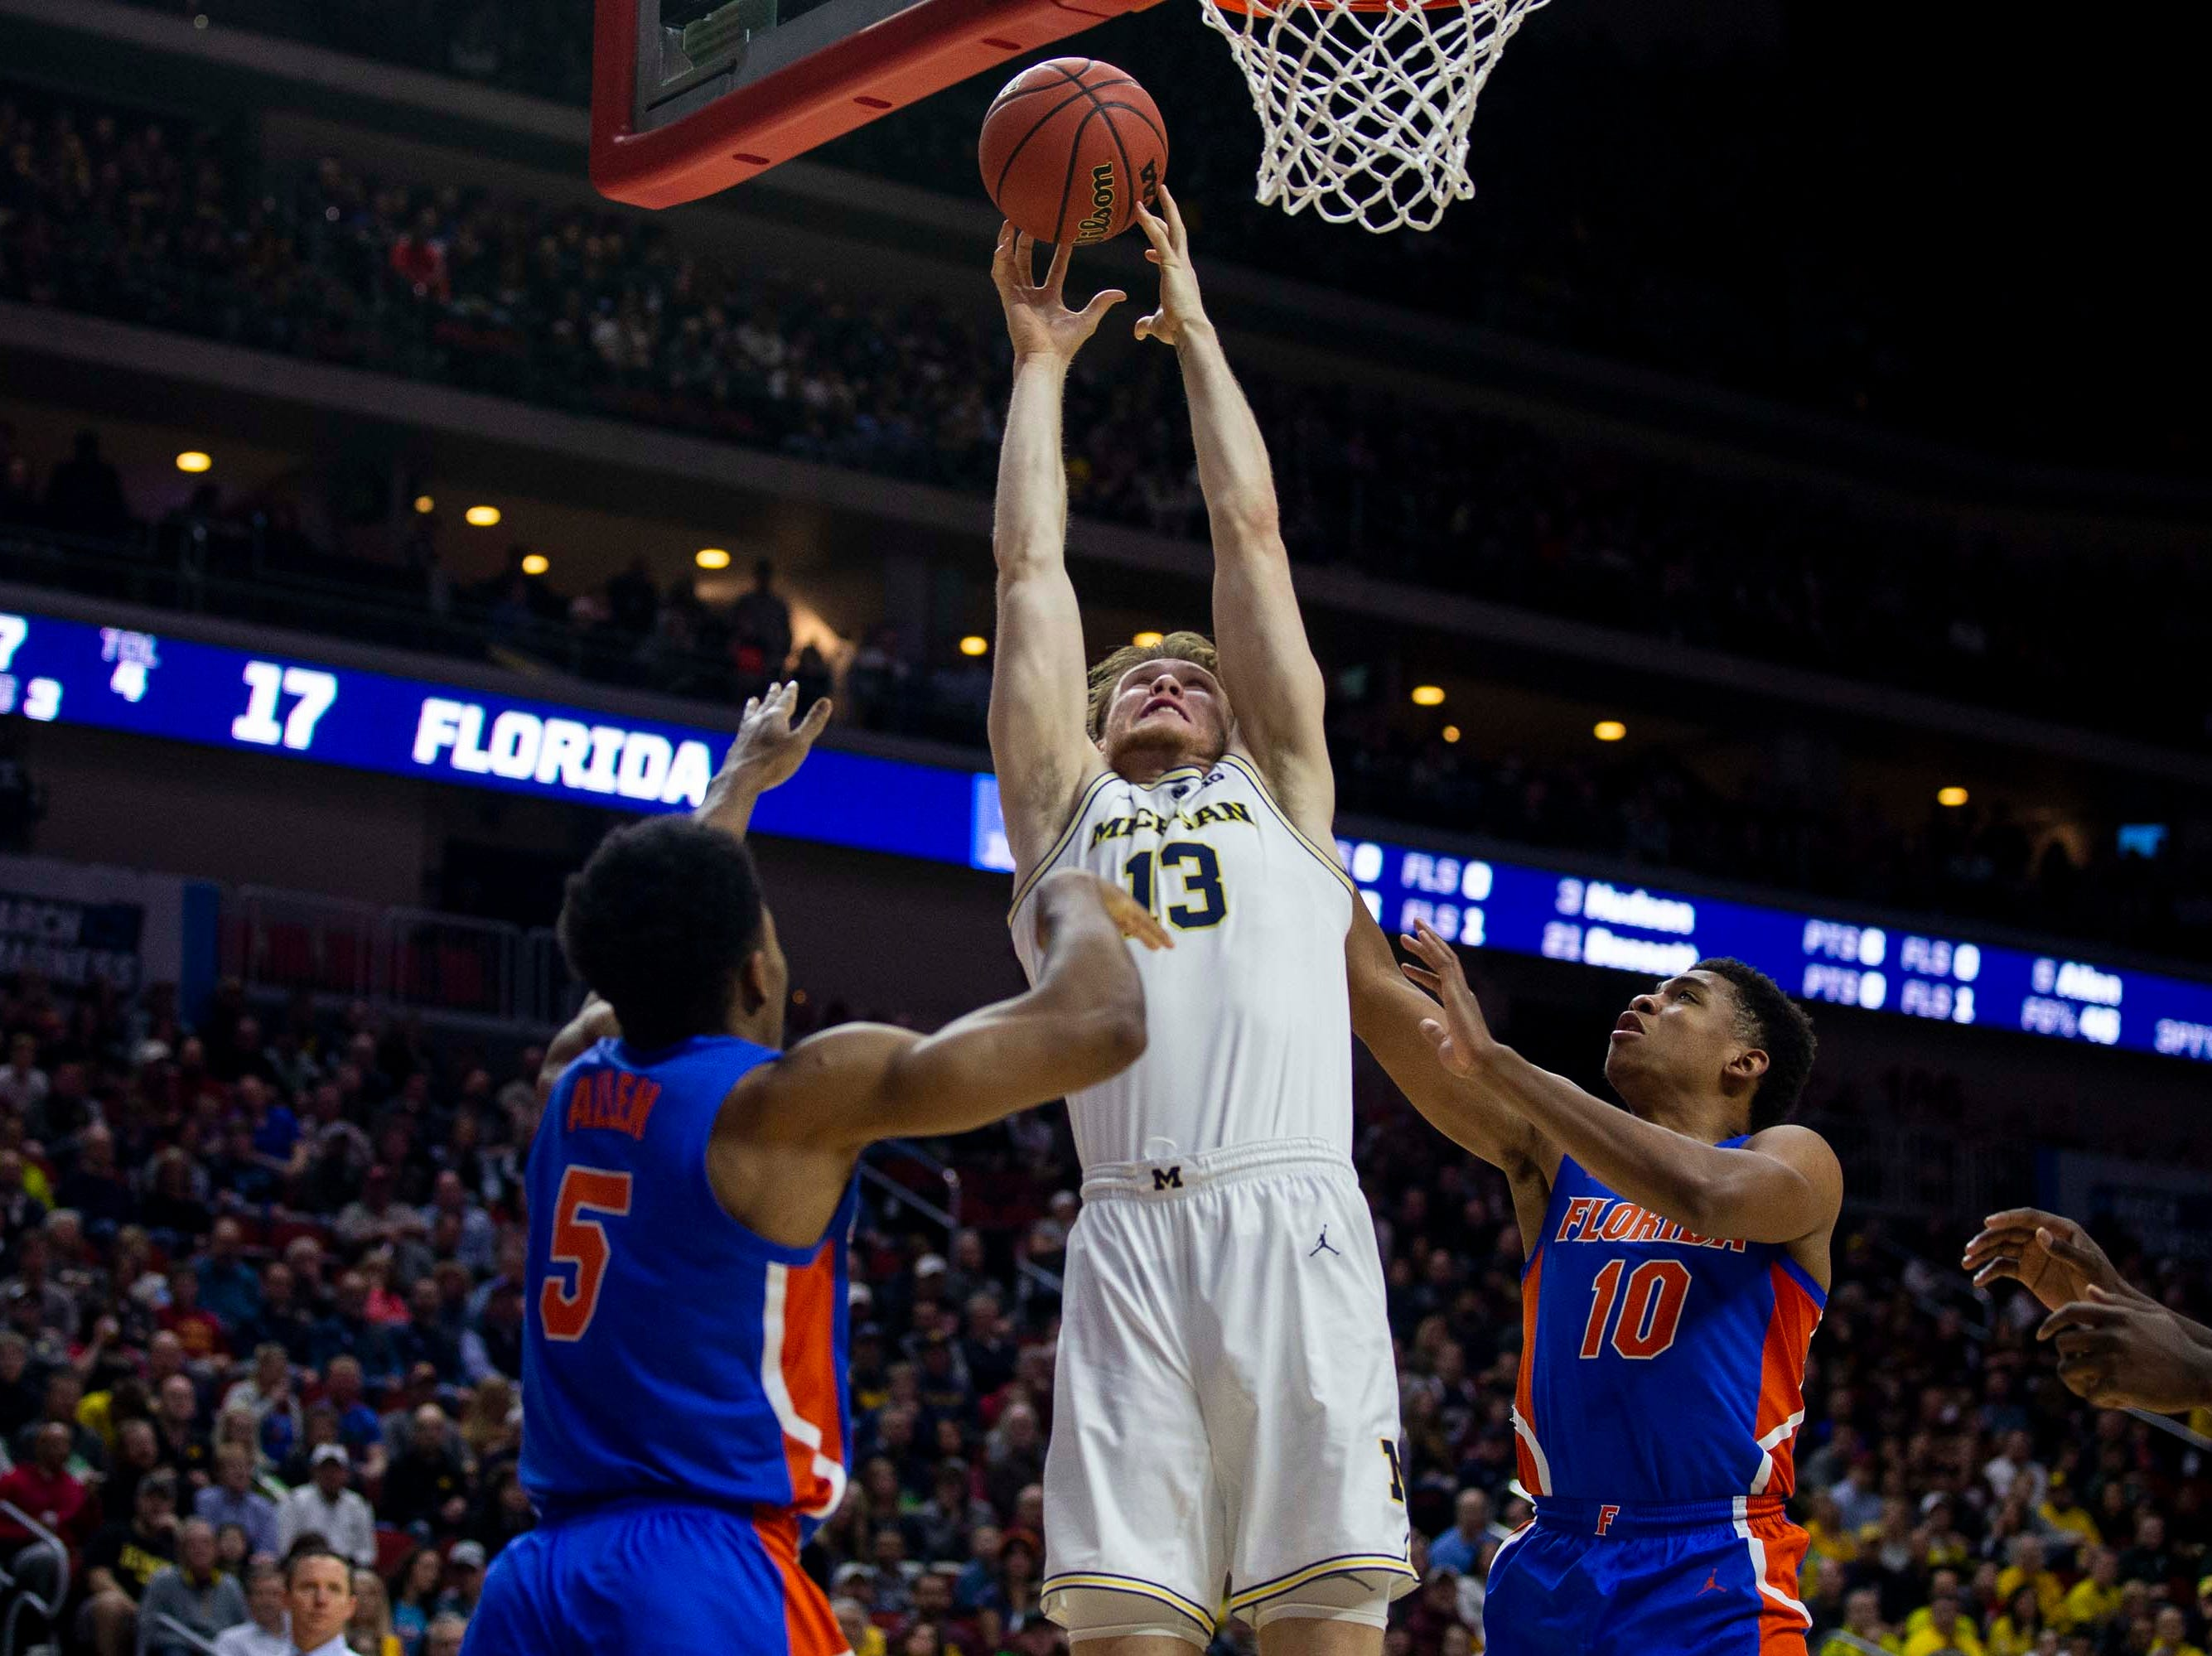 Michigan's Ignas Brazdeikis shoots the ball during the NCAA Tournament second-round match-up between Michigan and Florida on Saturday, March 23, 2019, in Wells Fargo Arena in Des Moines, Iowa.